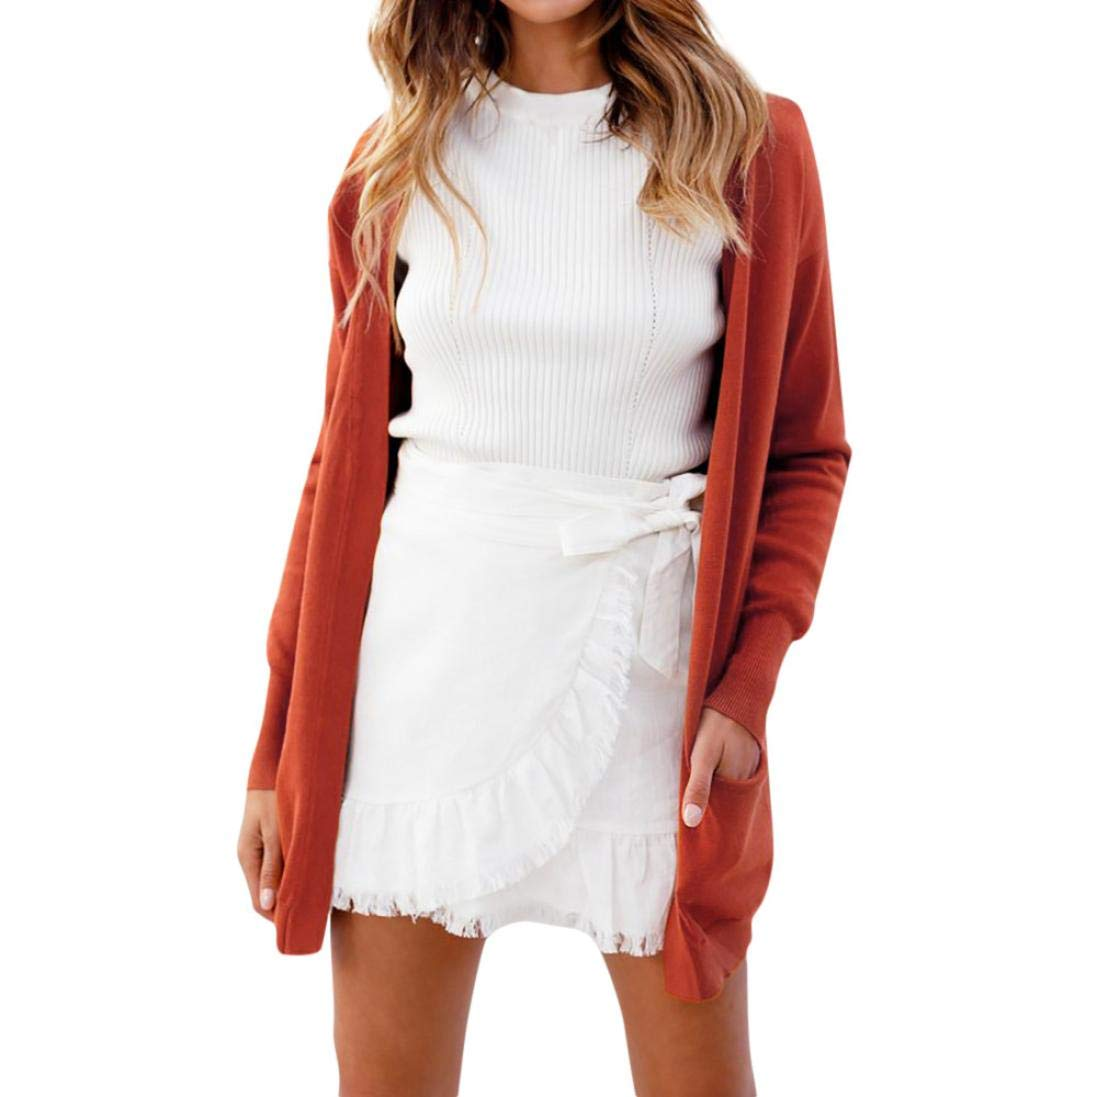 KFSO Women Long Sleeve Solid Open Front Cardigans Blouse Jumper Sweaters with Pocket Tops (Orange, 2XL)